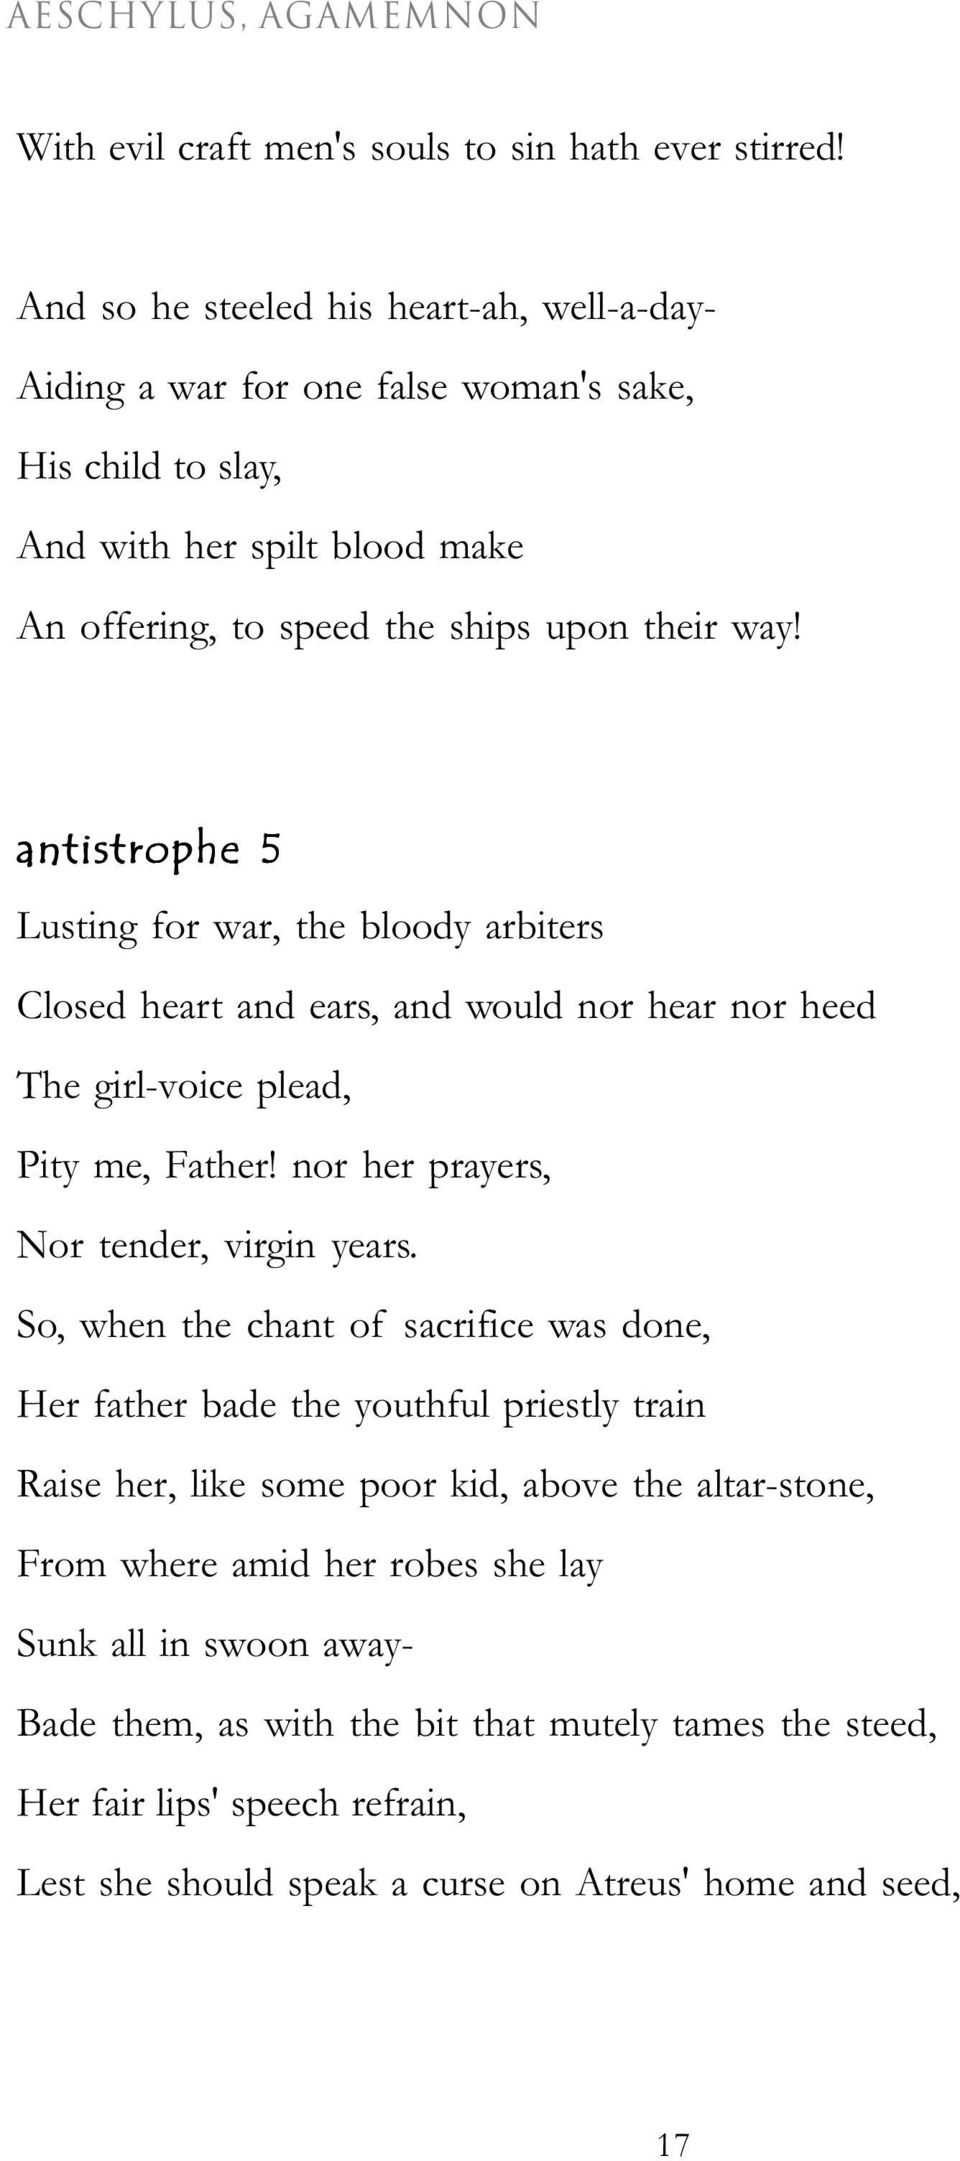 antistrophe 5 Lusting for war, the bloody arbiters Closed heart and ears, and would nor hear nor heed The girl-voice plead, Pity me, Father! nor her prayers, Nor tender, virgin years.